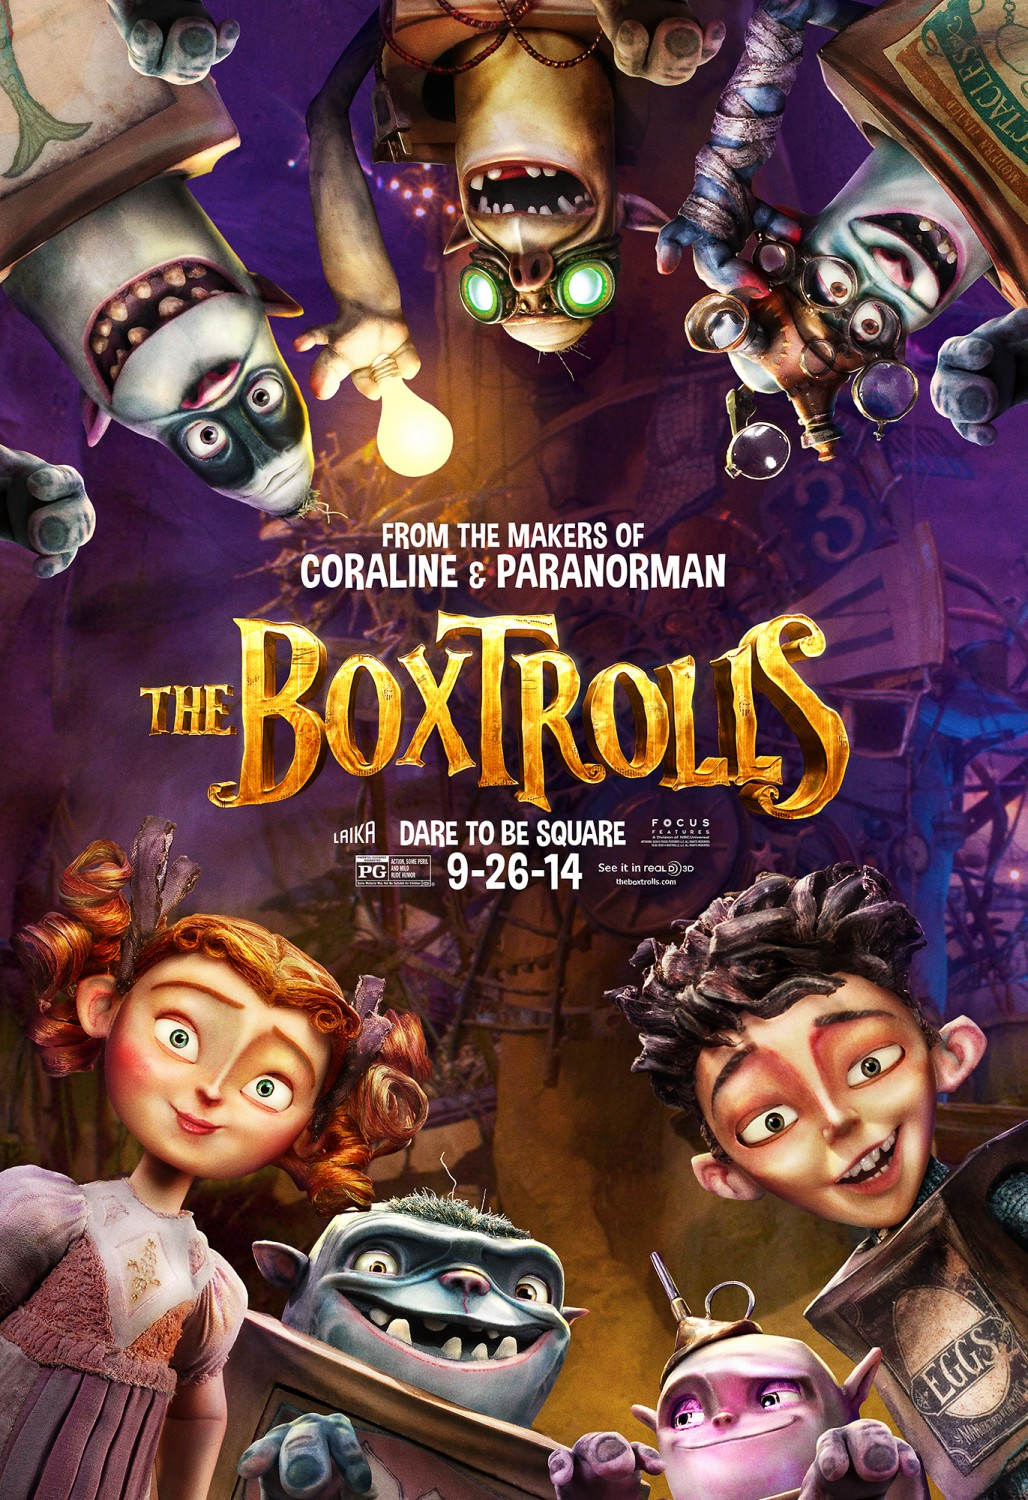 The Boxtrolls-Official Poster Banner PROMO XLG-05SETEMBRO2014-01